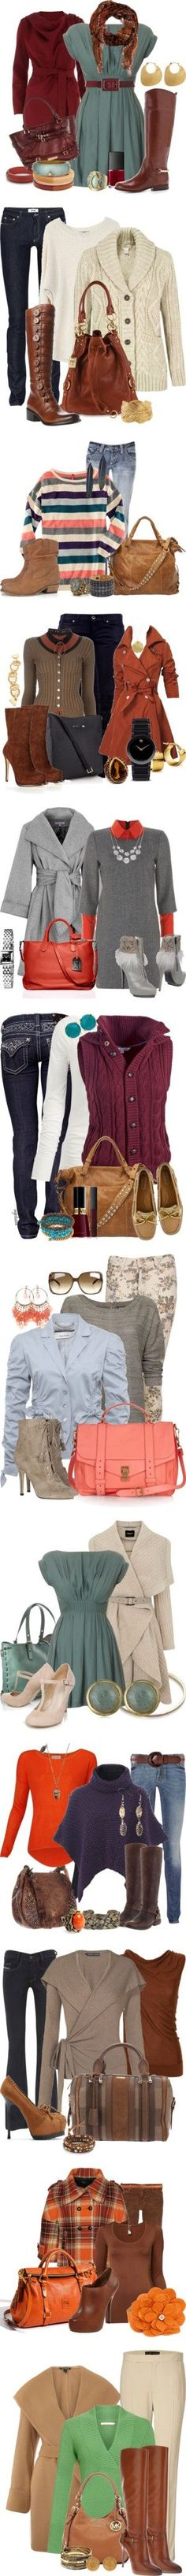 Autumn Outfits For Cold Nights Pictures, Photos, and Images for Facebook, Tumblr, Pinterest, and Twitter